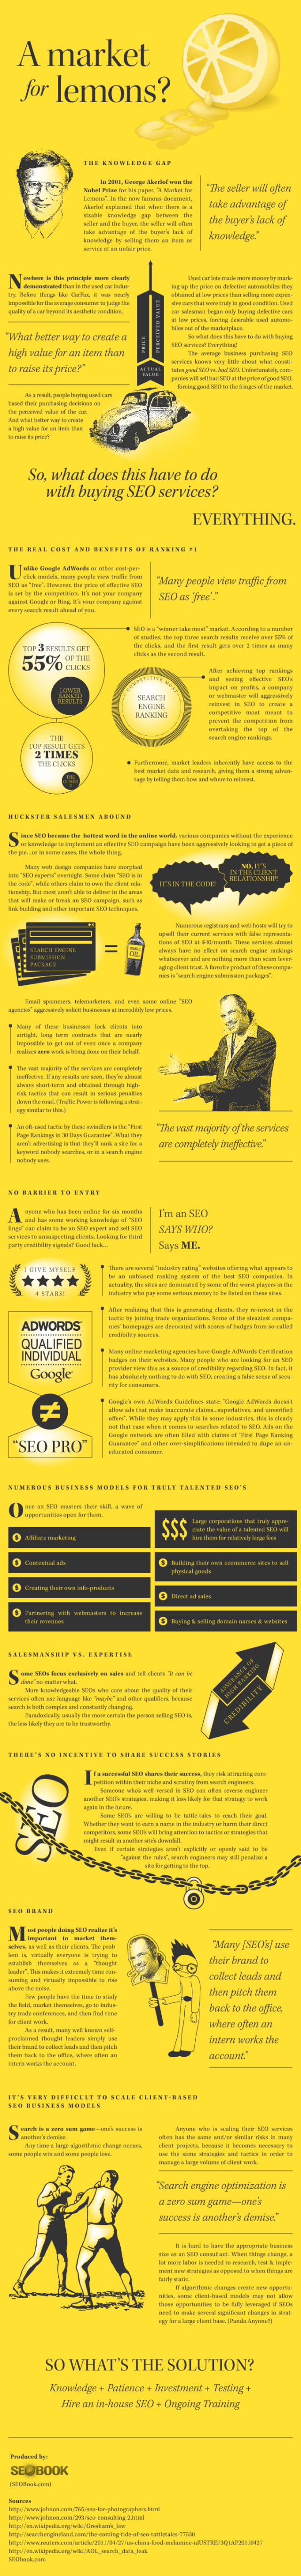 SEO Market for Lemons.